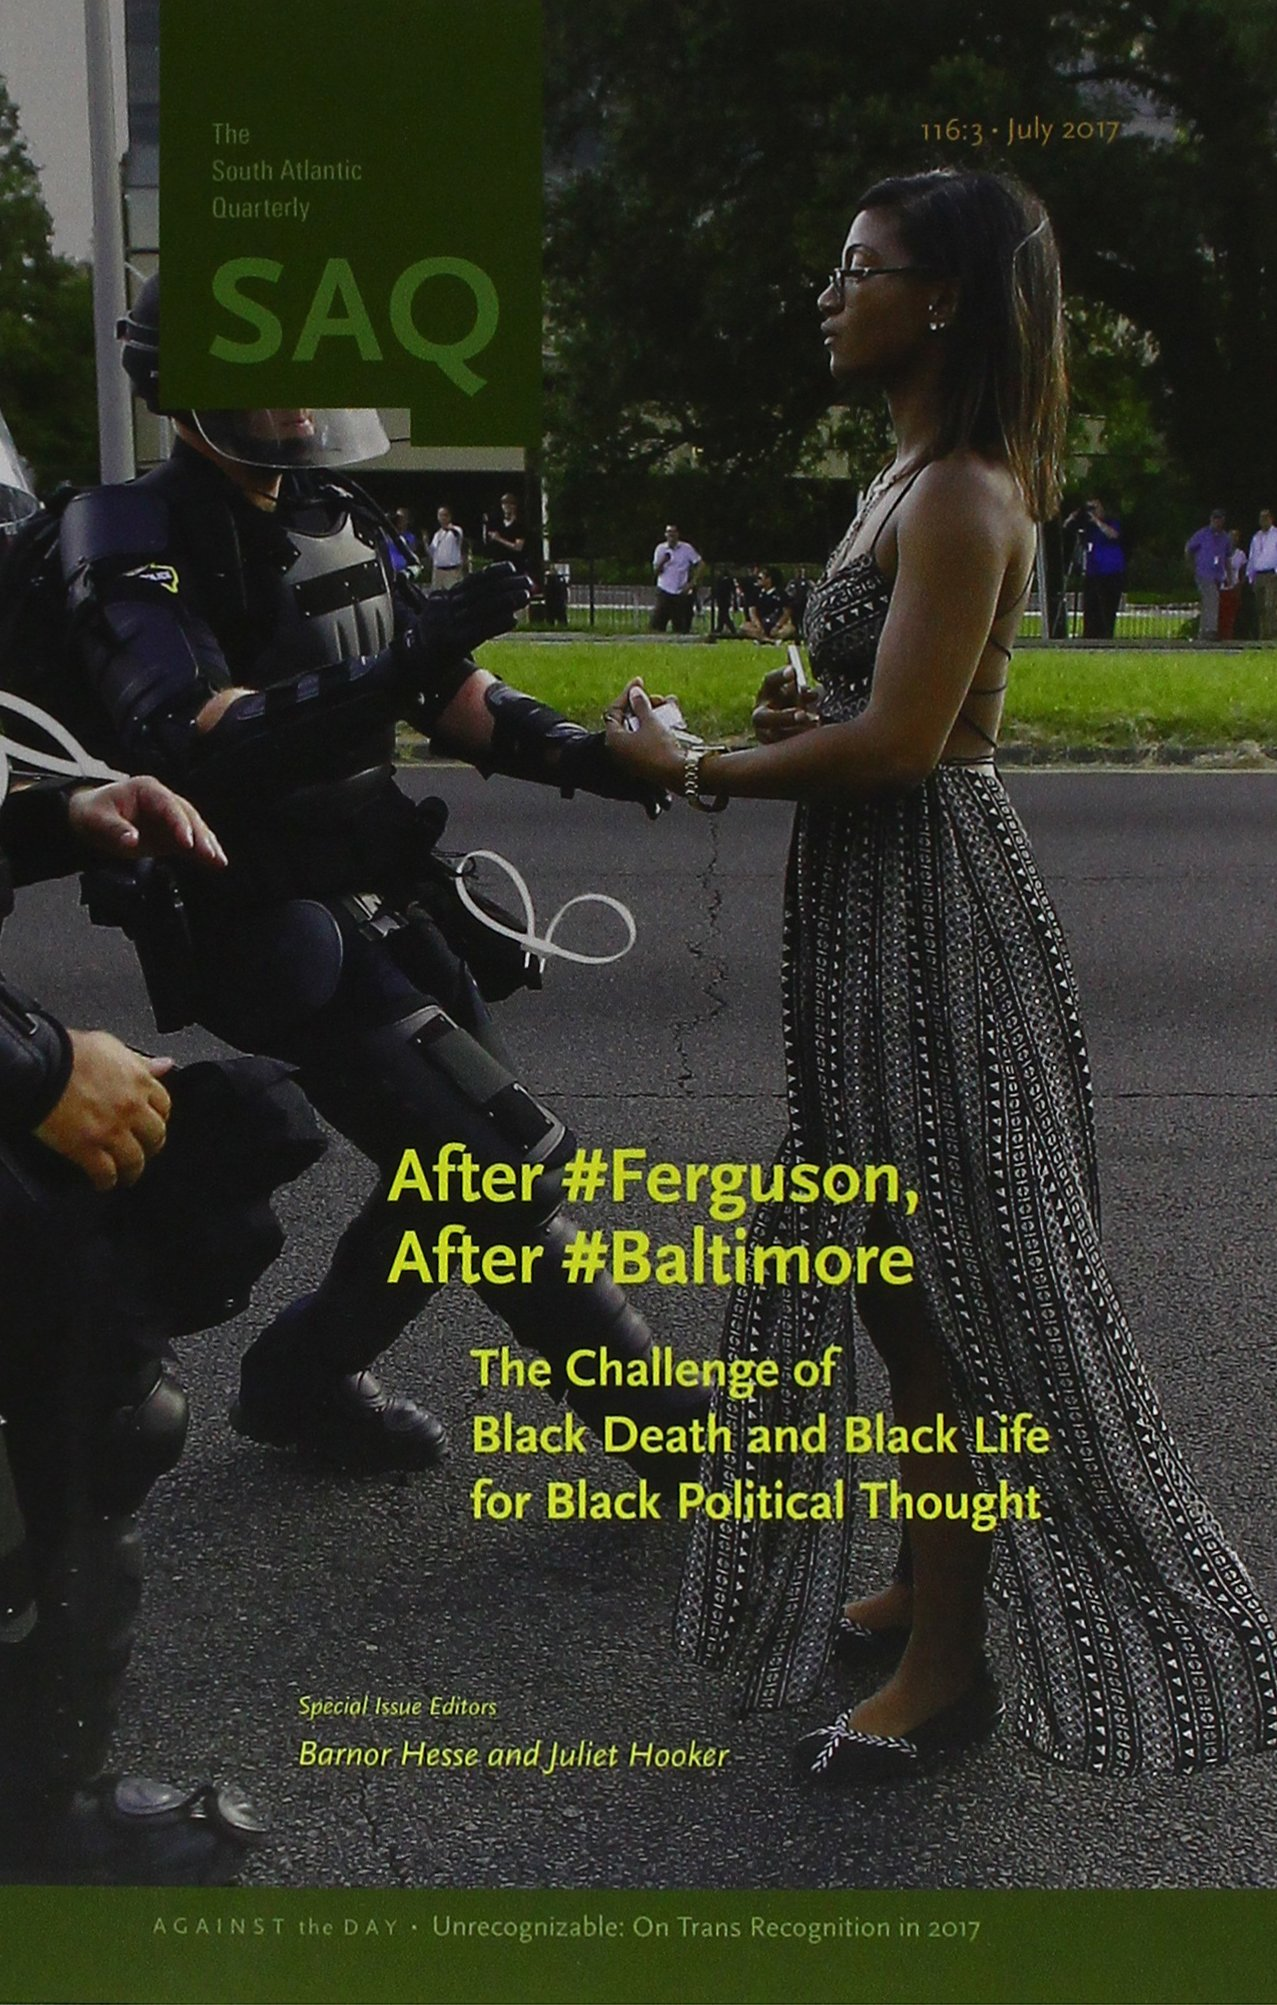 After #Ferguson, After #Baltimore: The Challenge of Black Death and Black Life for Black Political Thought: Amazon.co.uk: Barnor Hesse, Juliet Hooker: ...